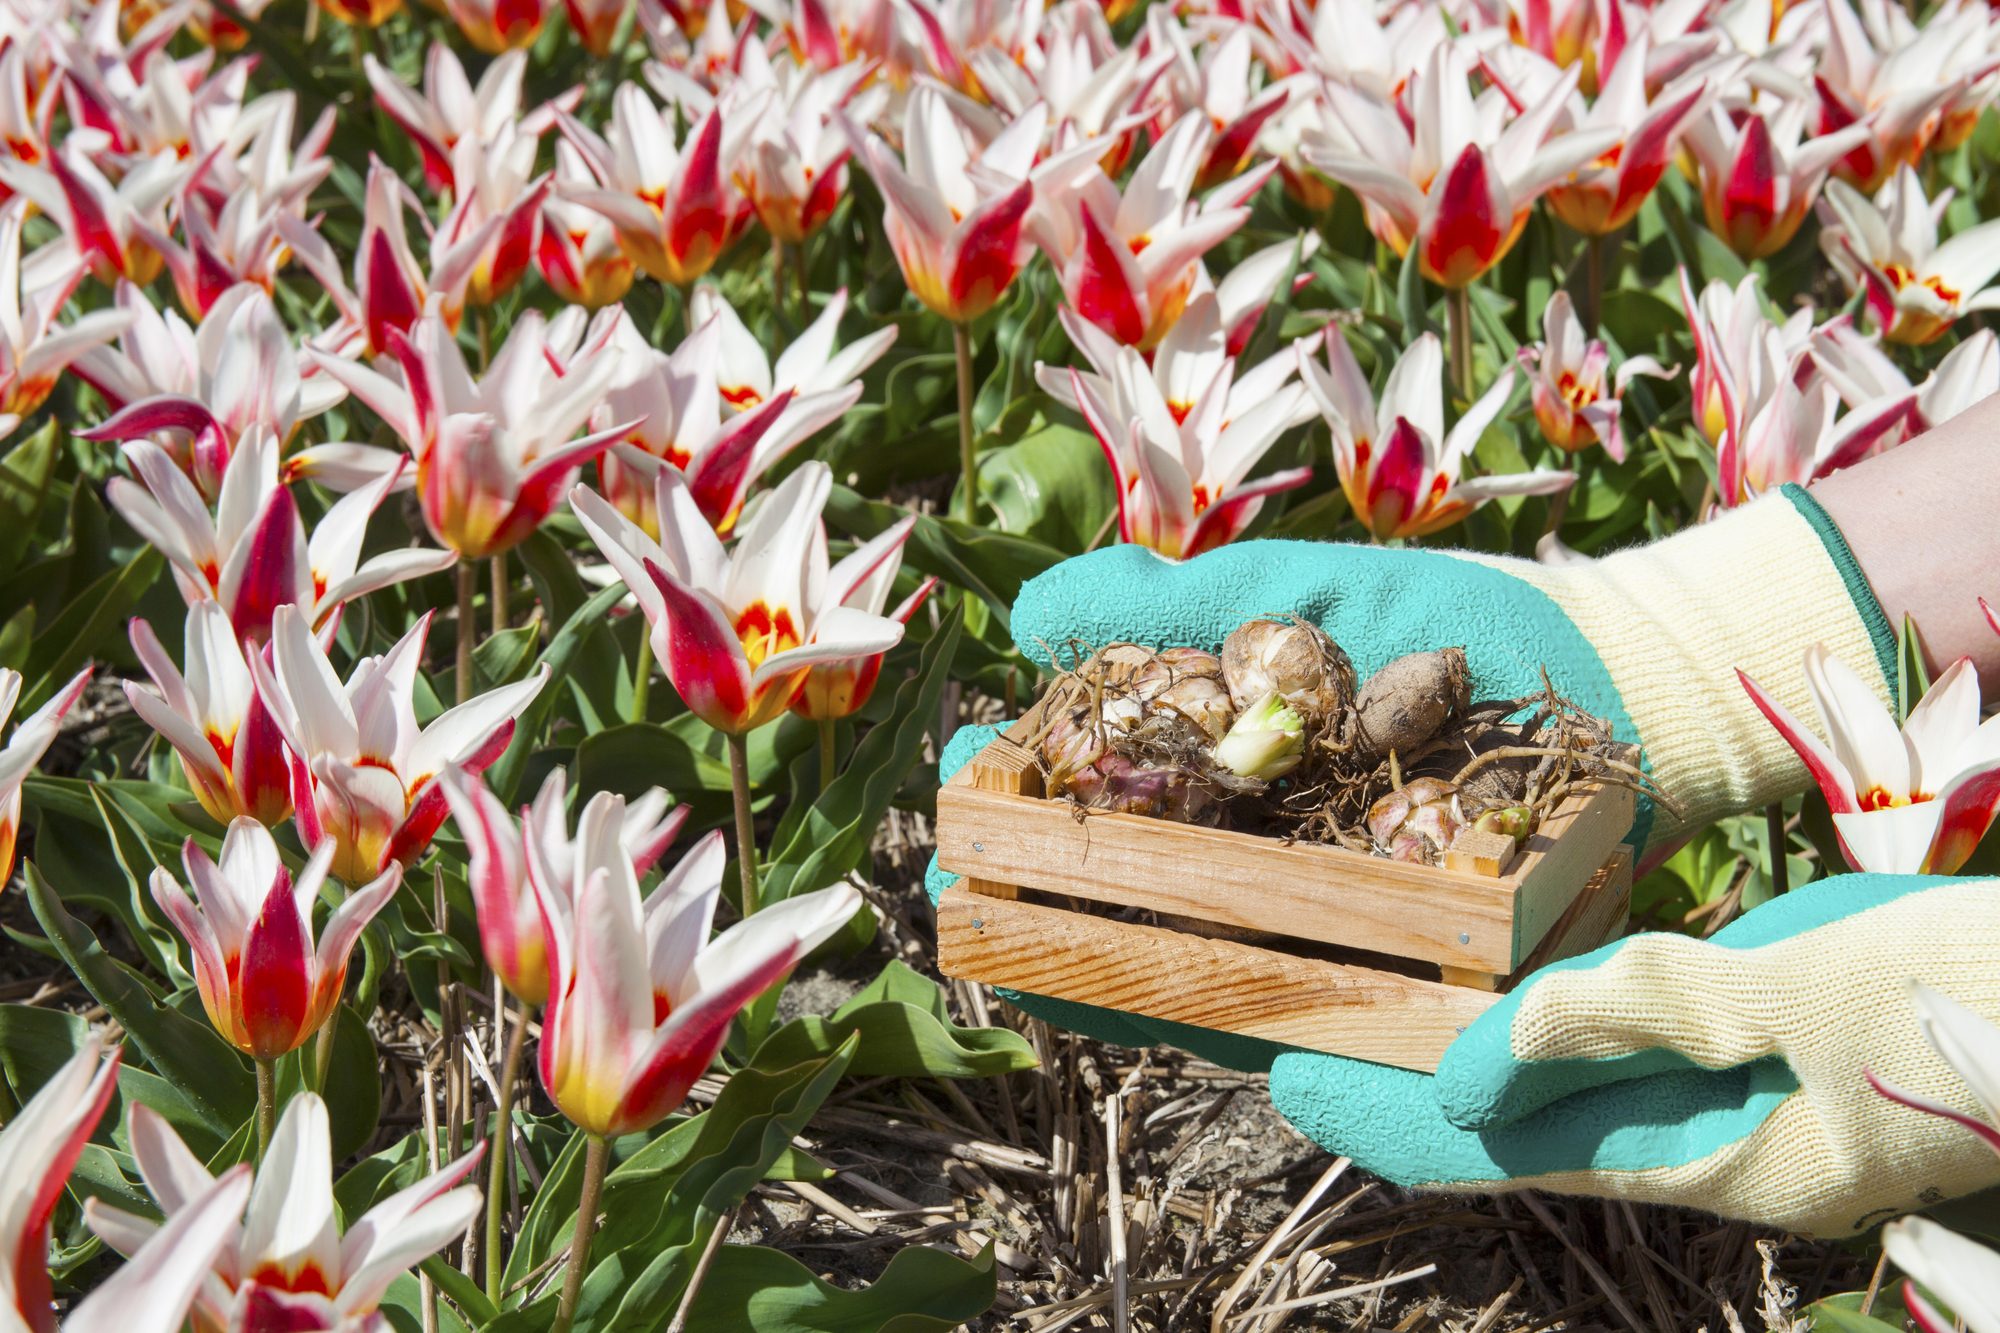 How to Care for Bulbs